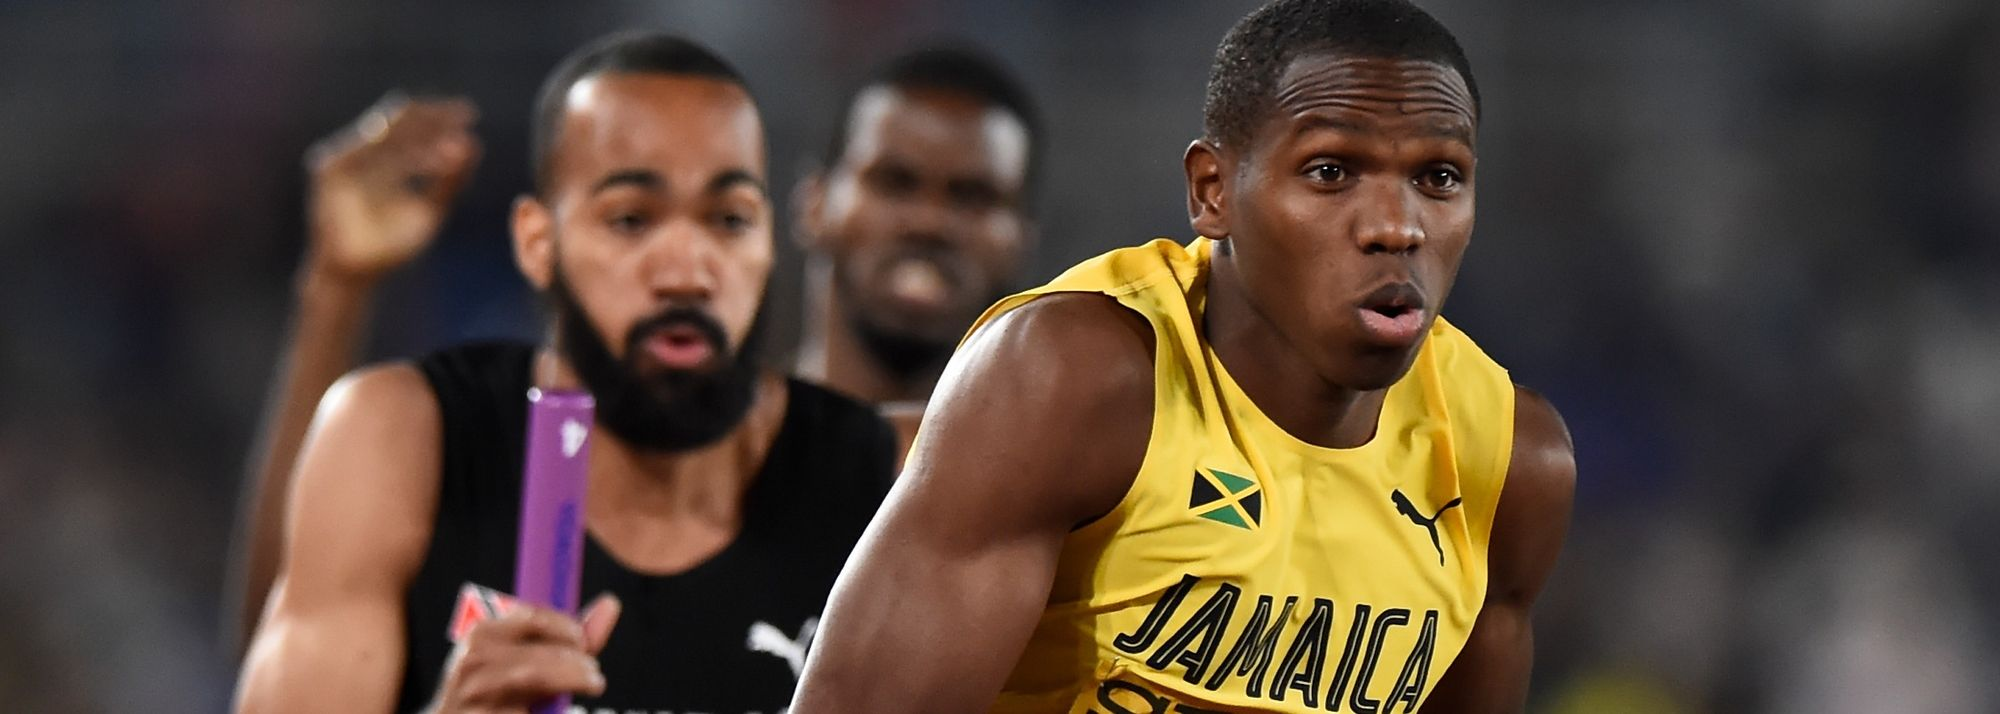 A Jamaican team of 39 athletes, including multiple global gold medallists Elaine Thompson-Herah and Asafa Powell, has been selected for the World Athletics Relays Silesia 21 on 1-2 May.